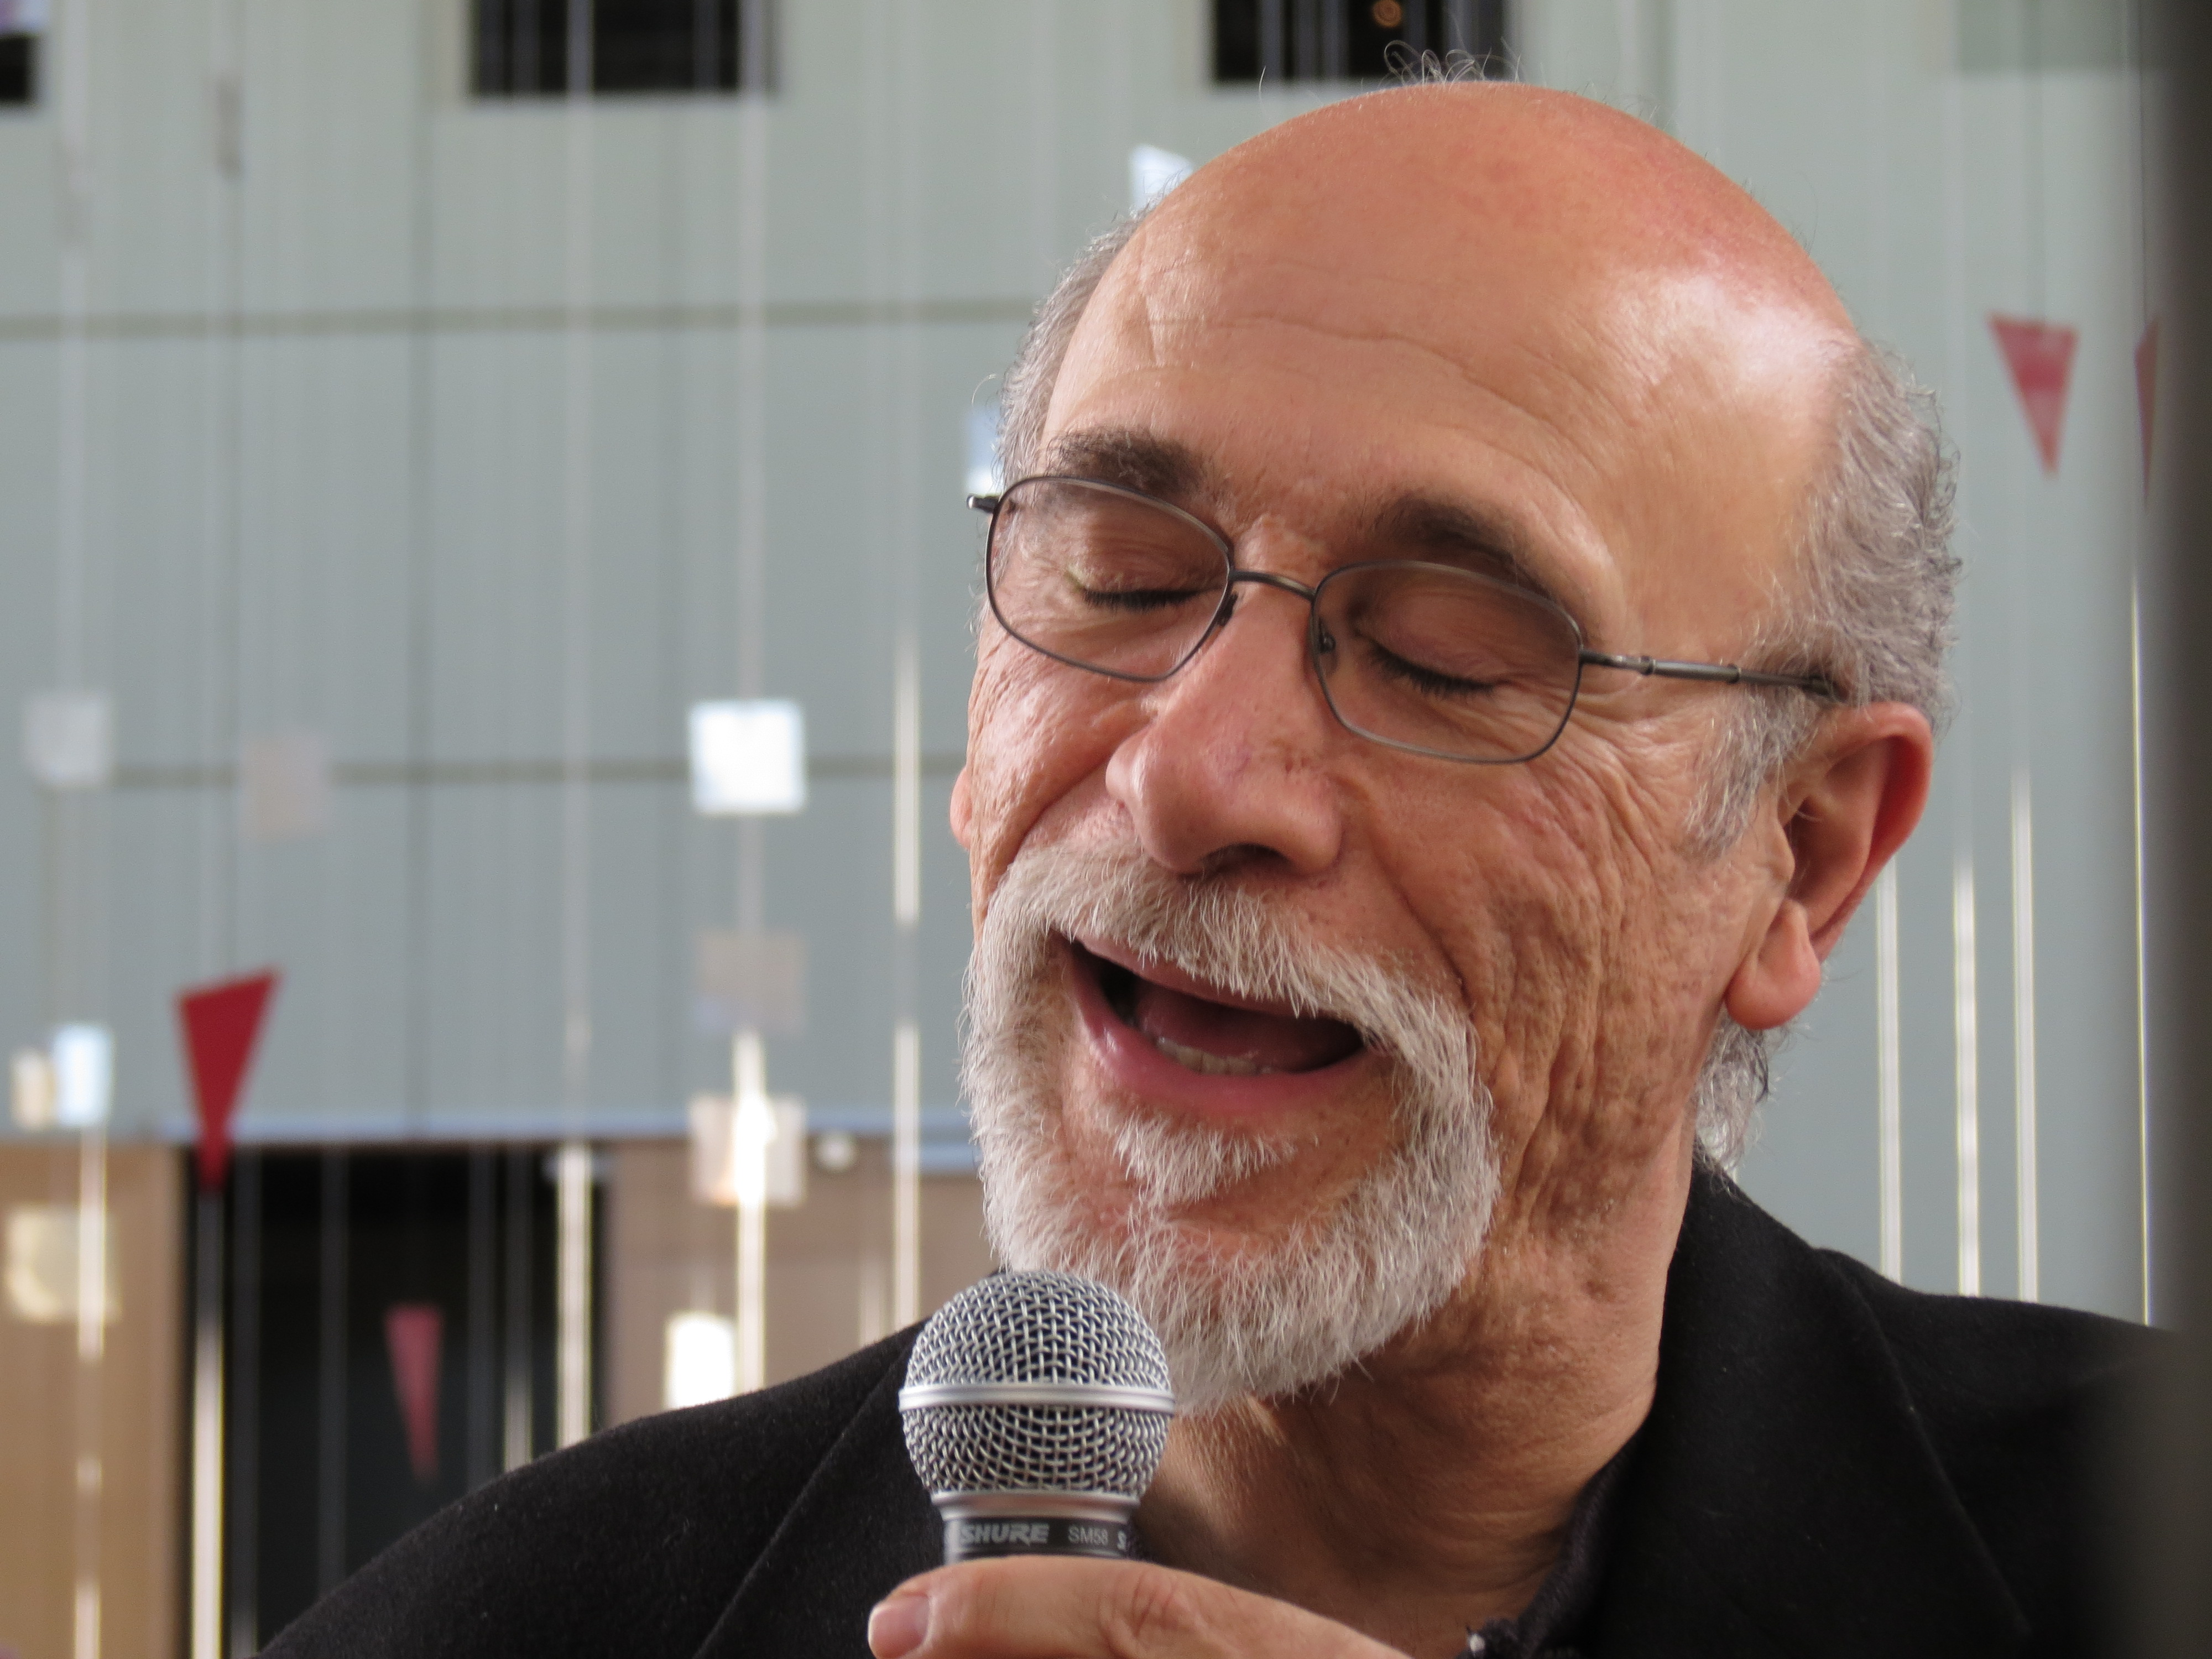 tony amendola annabelletony amendola facebook, tony amendola, tony amendola imdb, тони амендола, tony amendola khadgar, тони амендола википедия, tony amendola fortress, tony amendola f murray abraham, tony amendola italiano, tony amendola once upon a time, tony amendola ethnicity, tony amendola net worth, tony amendola football player, tony amendola star trek, tony amendola black ops 3, tony amendola annabelle, tony amendola homeland, tony amendola world of warcraft, tony amendola skyrim, tony amendola biography